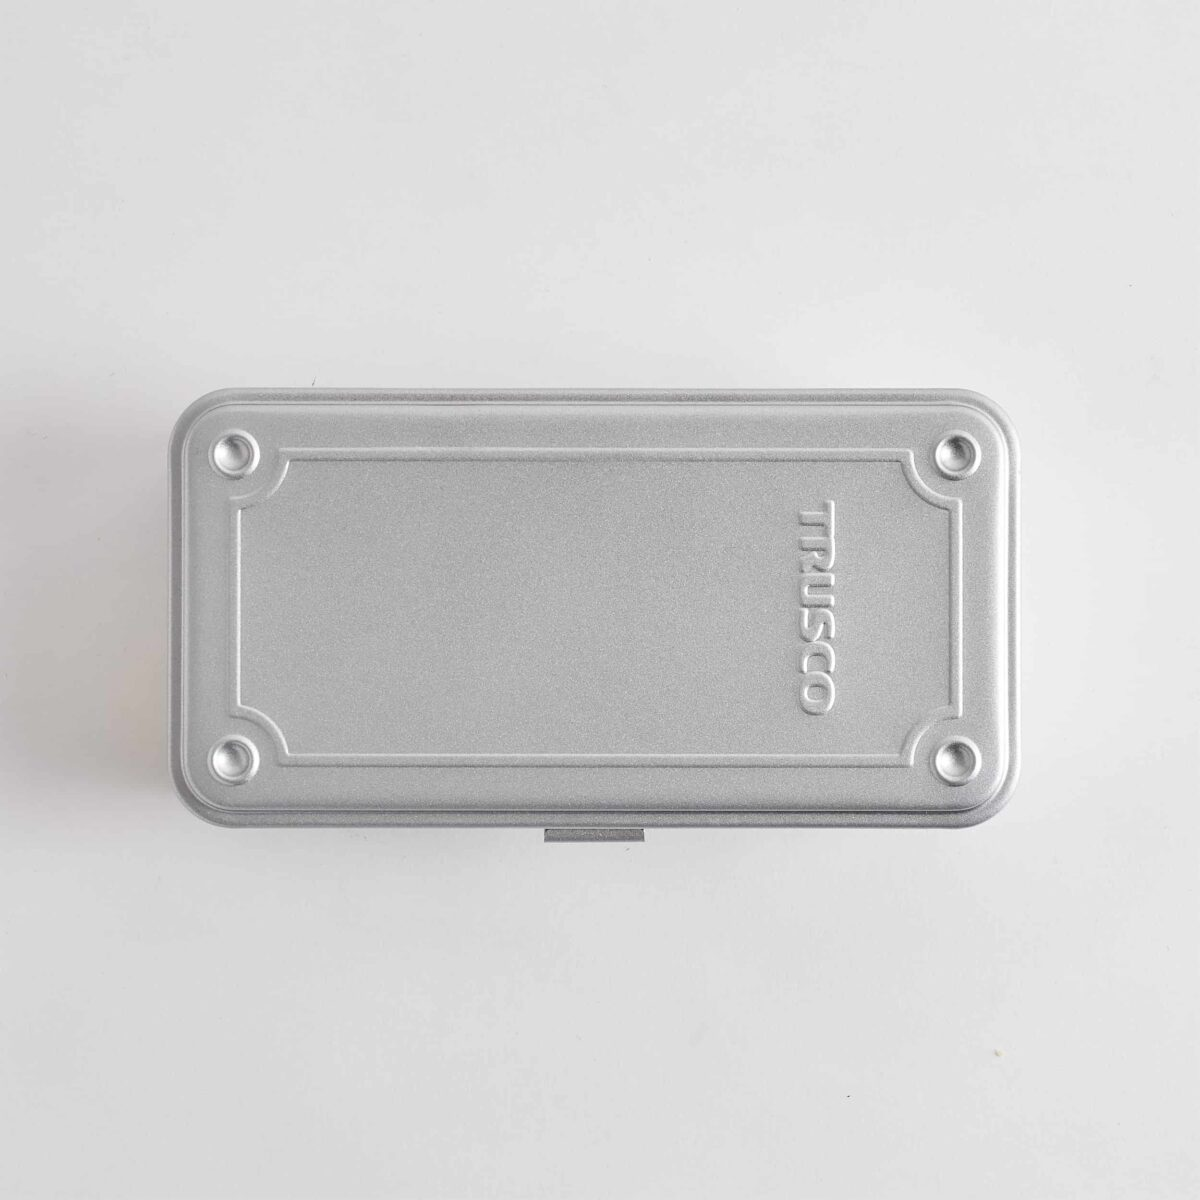 Trusco Component Box Large Silver -Another-Country-Photo Credit Yeshen Venema -web ready-21.11.185363